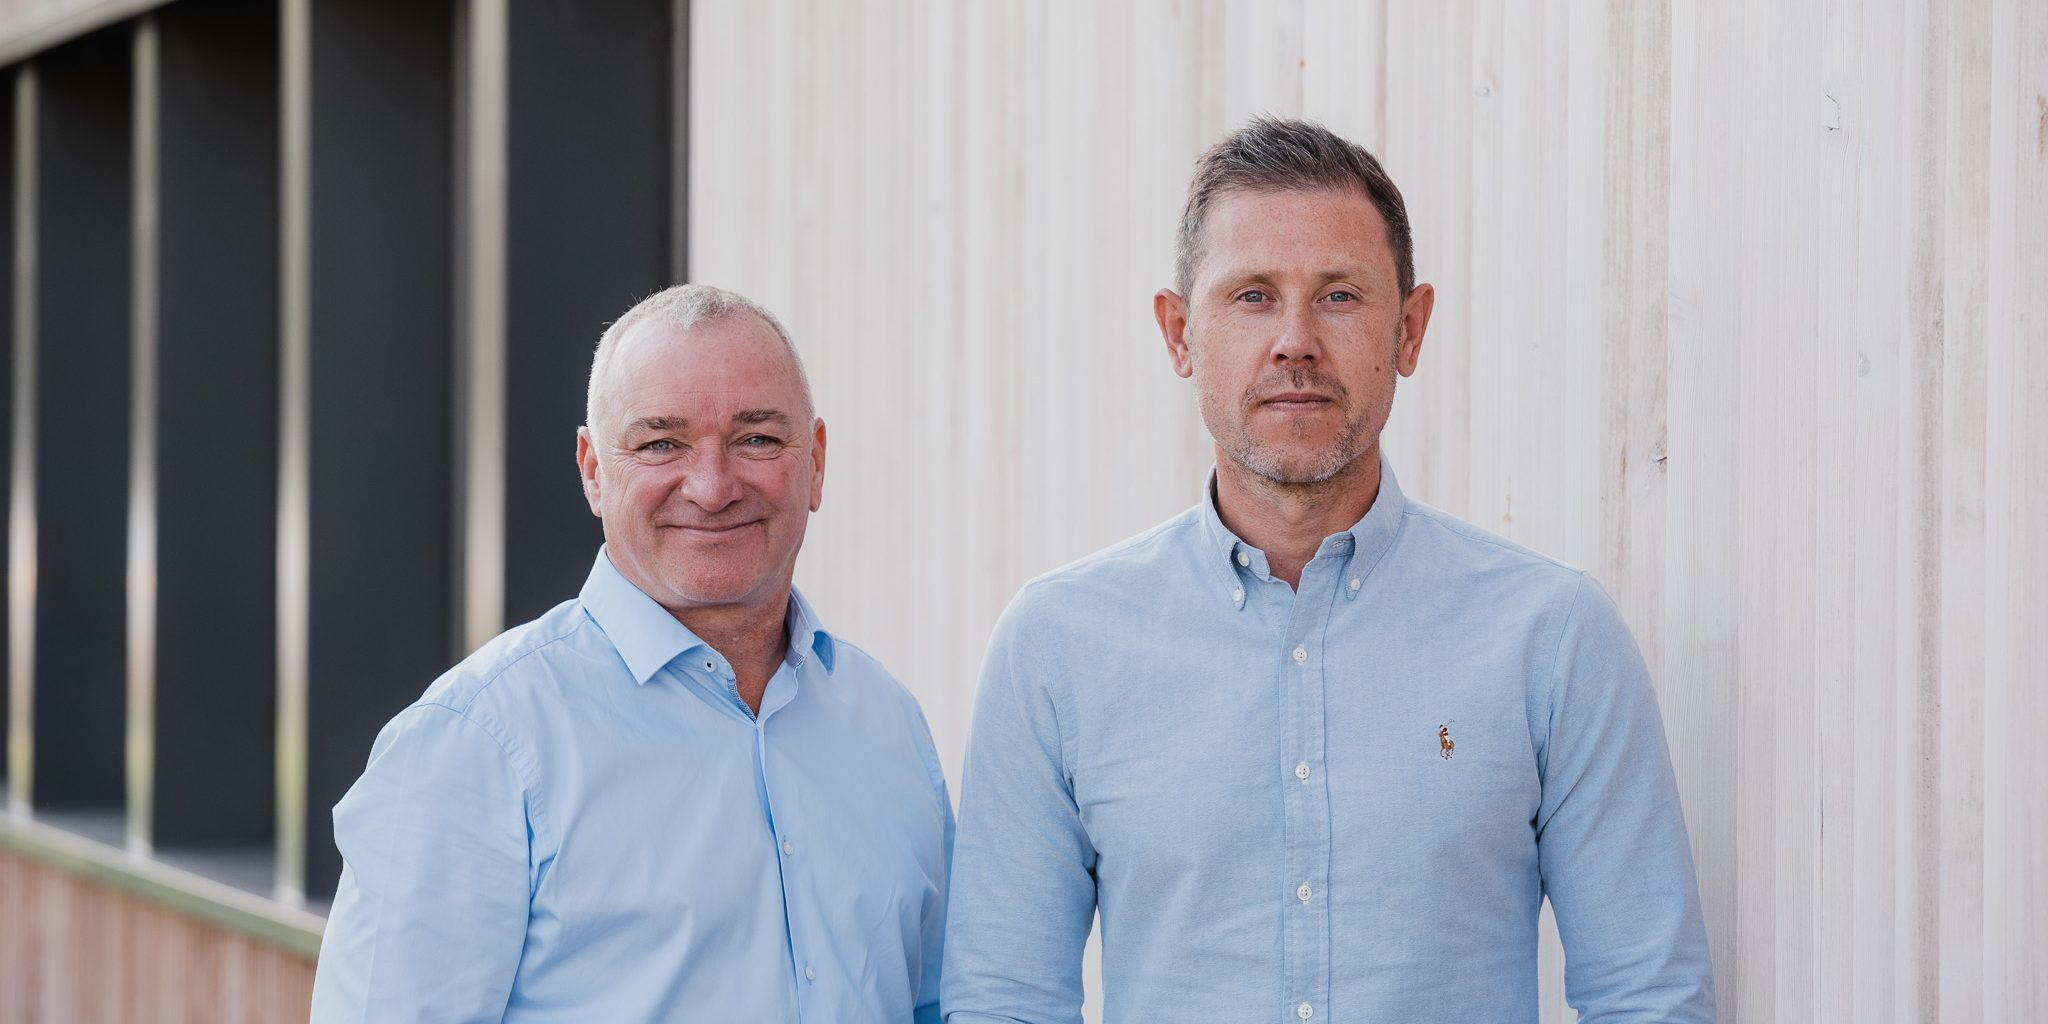 Co-founders of Vebro Polymers, Craig Brookes (left) and Mark Verinder (right)